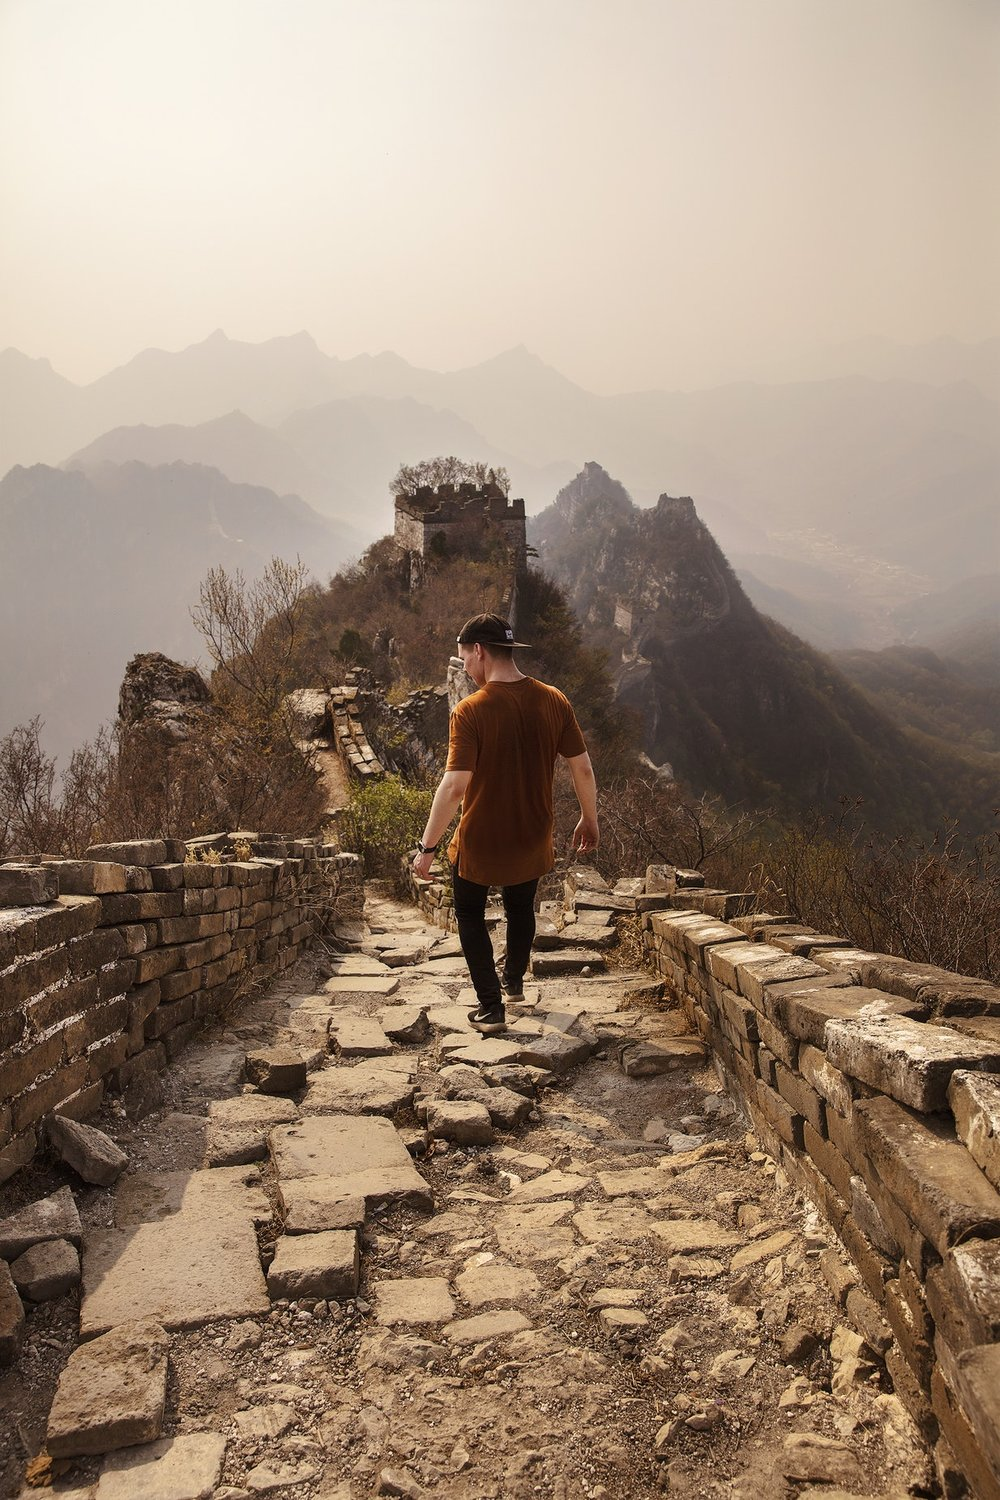 The Great Wall of China by Joshua Earle via Unsplash